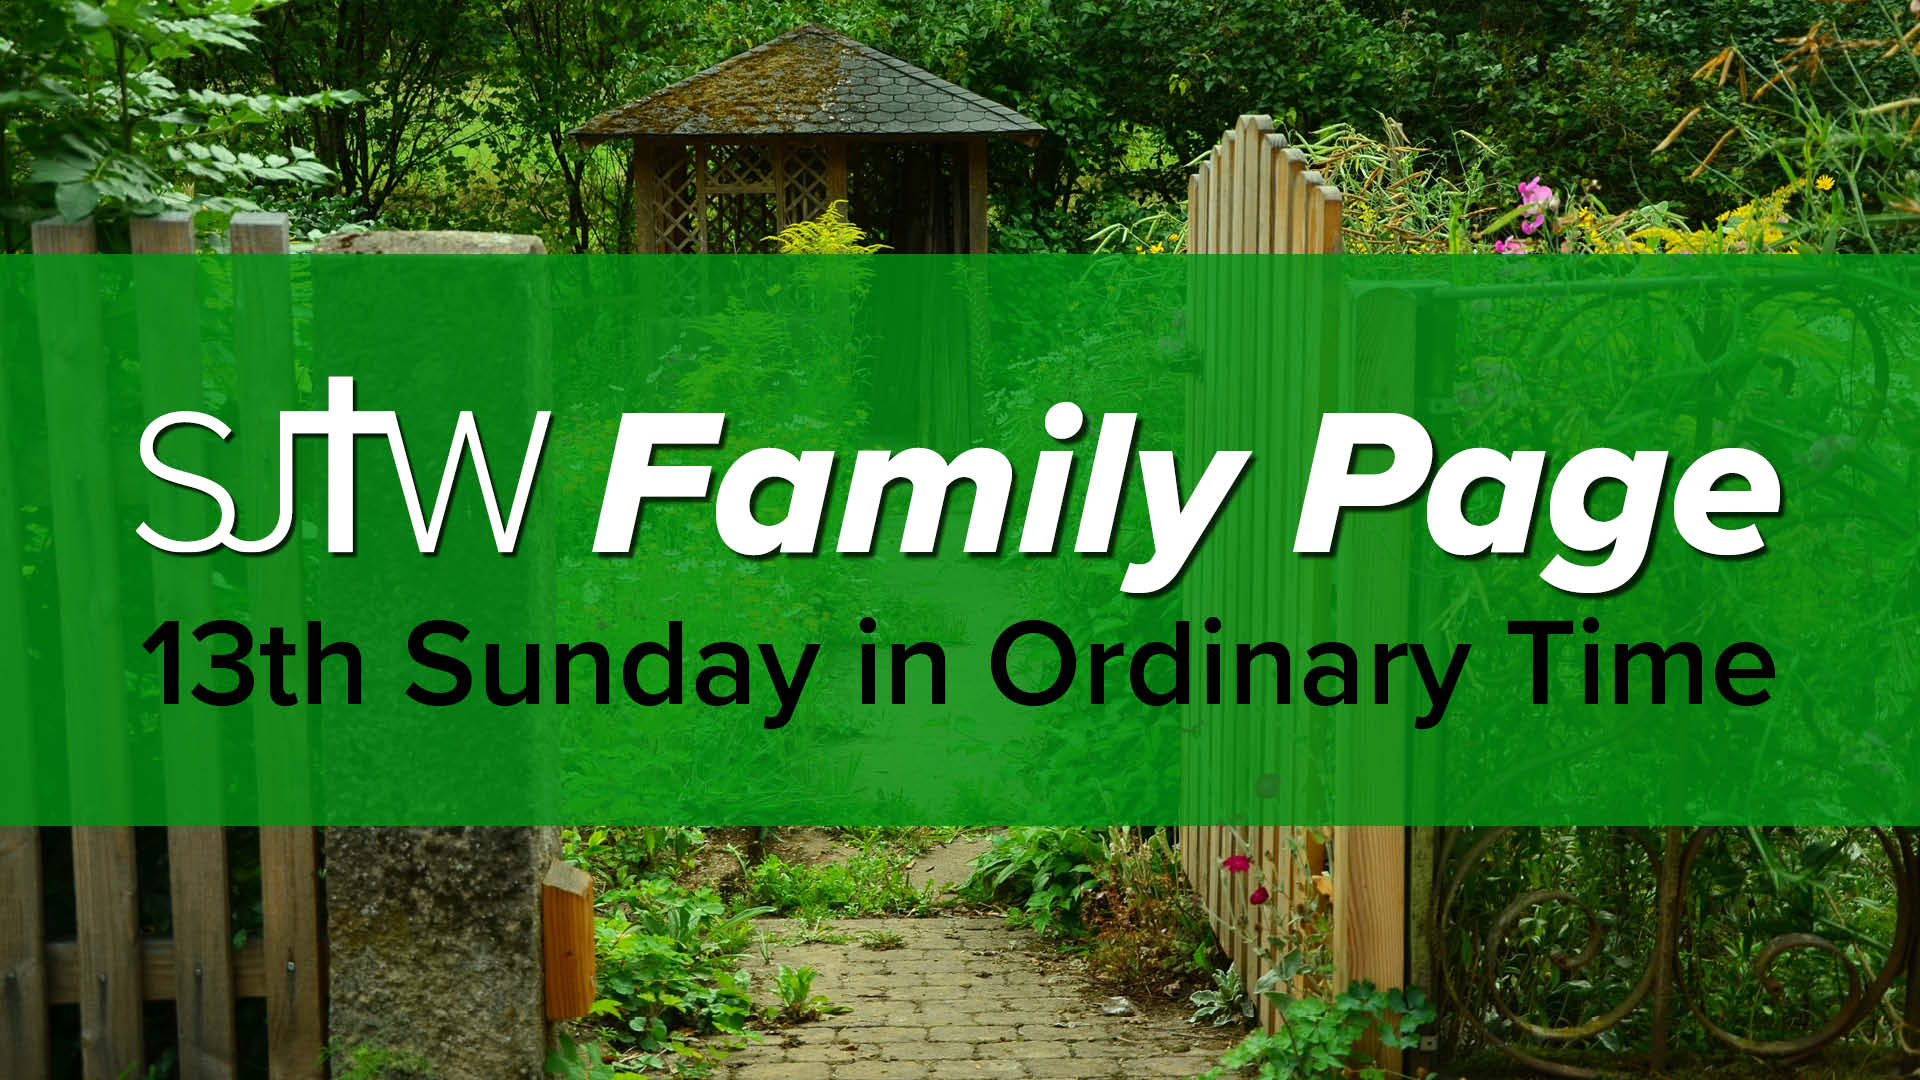 Family Page - 13th Sunday in Ordinary Time